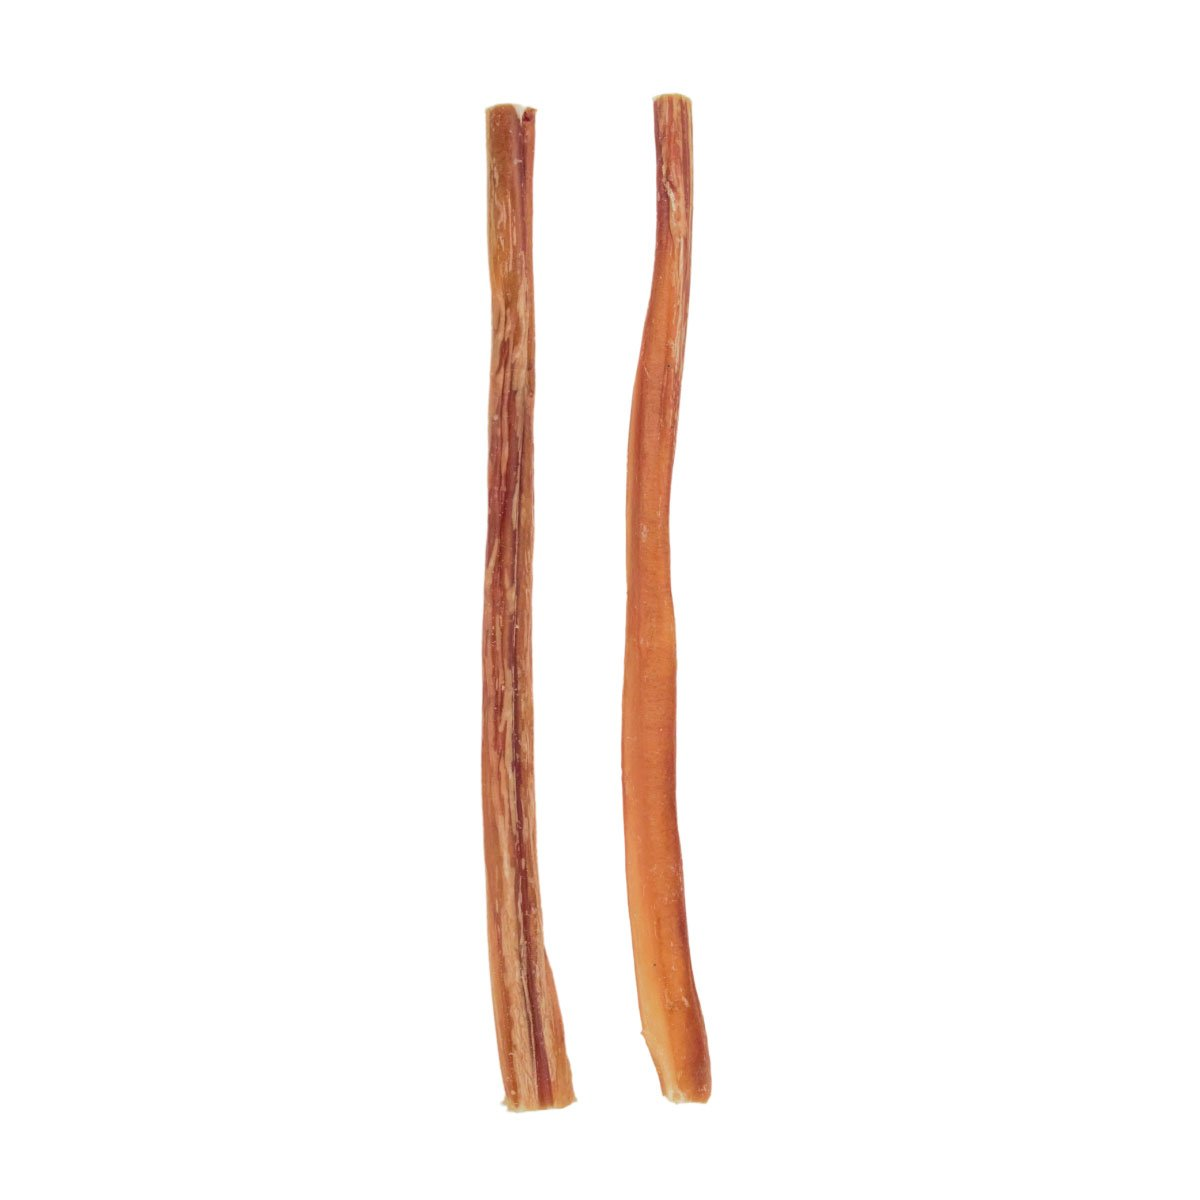 "Bully Stick 12"" Standard - 10 Pack"